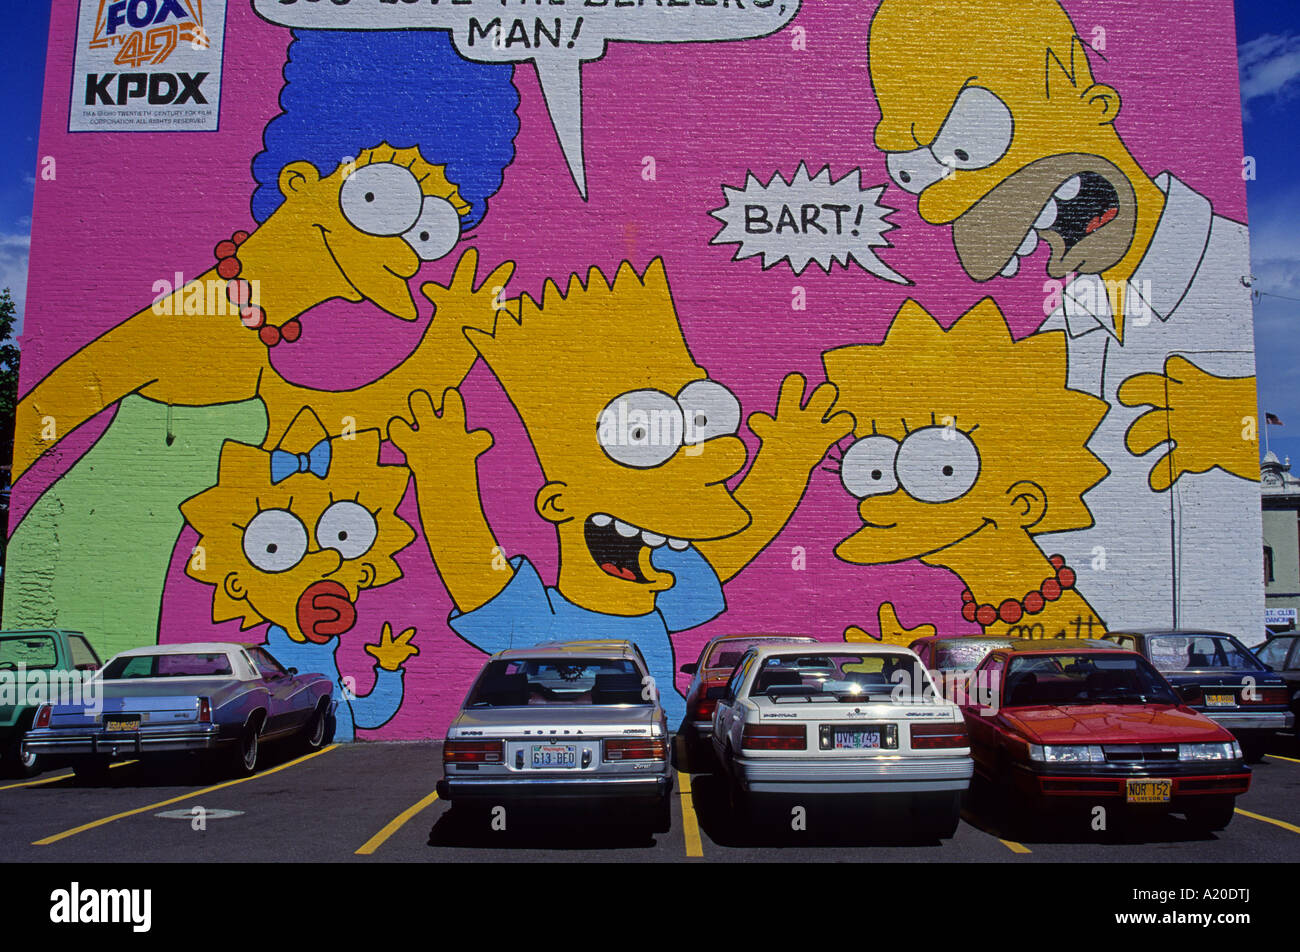 The wall painting in Portland U.S.A. North America Stock Photo ...